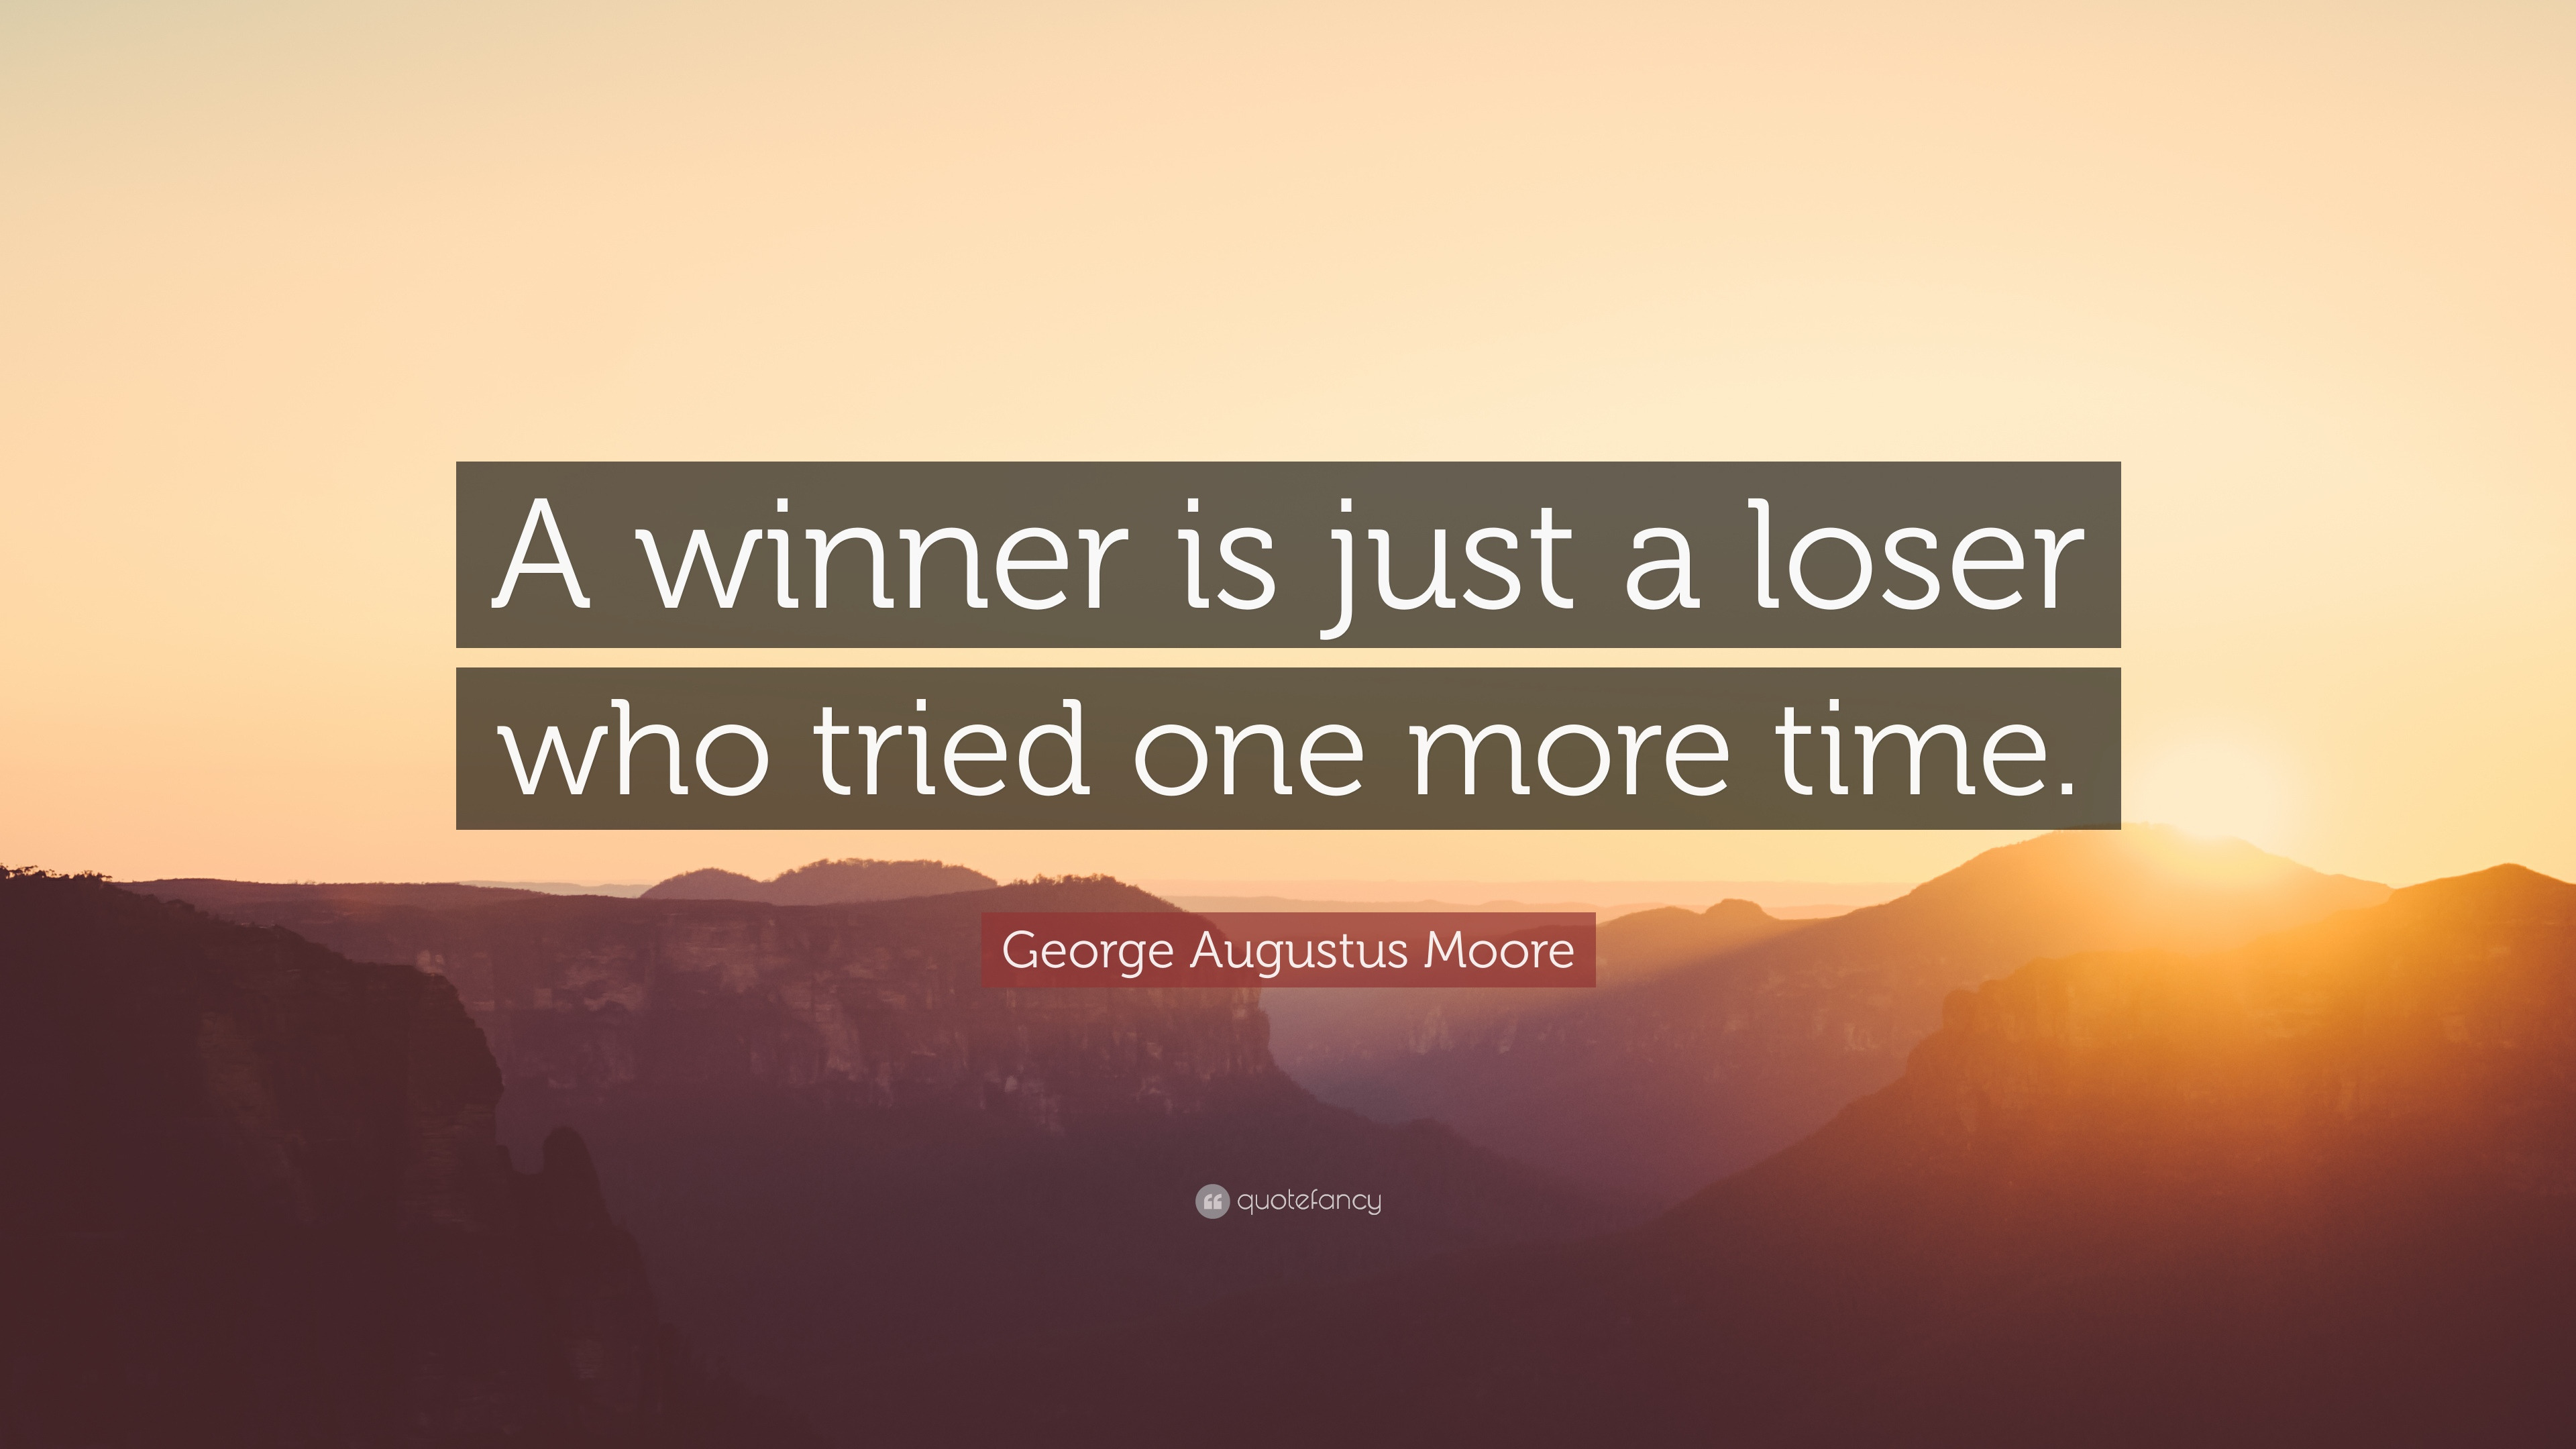 Arnold Schwarzenegger Quotes Wallpaper George Augustus Moore Quote A Winner Is Just A Loser Who